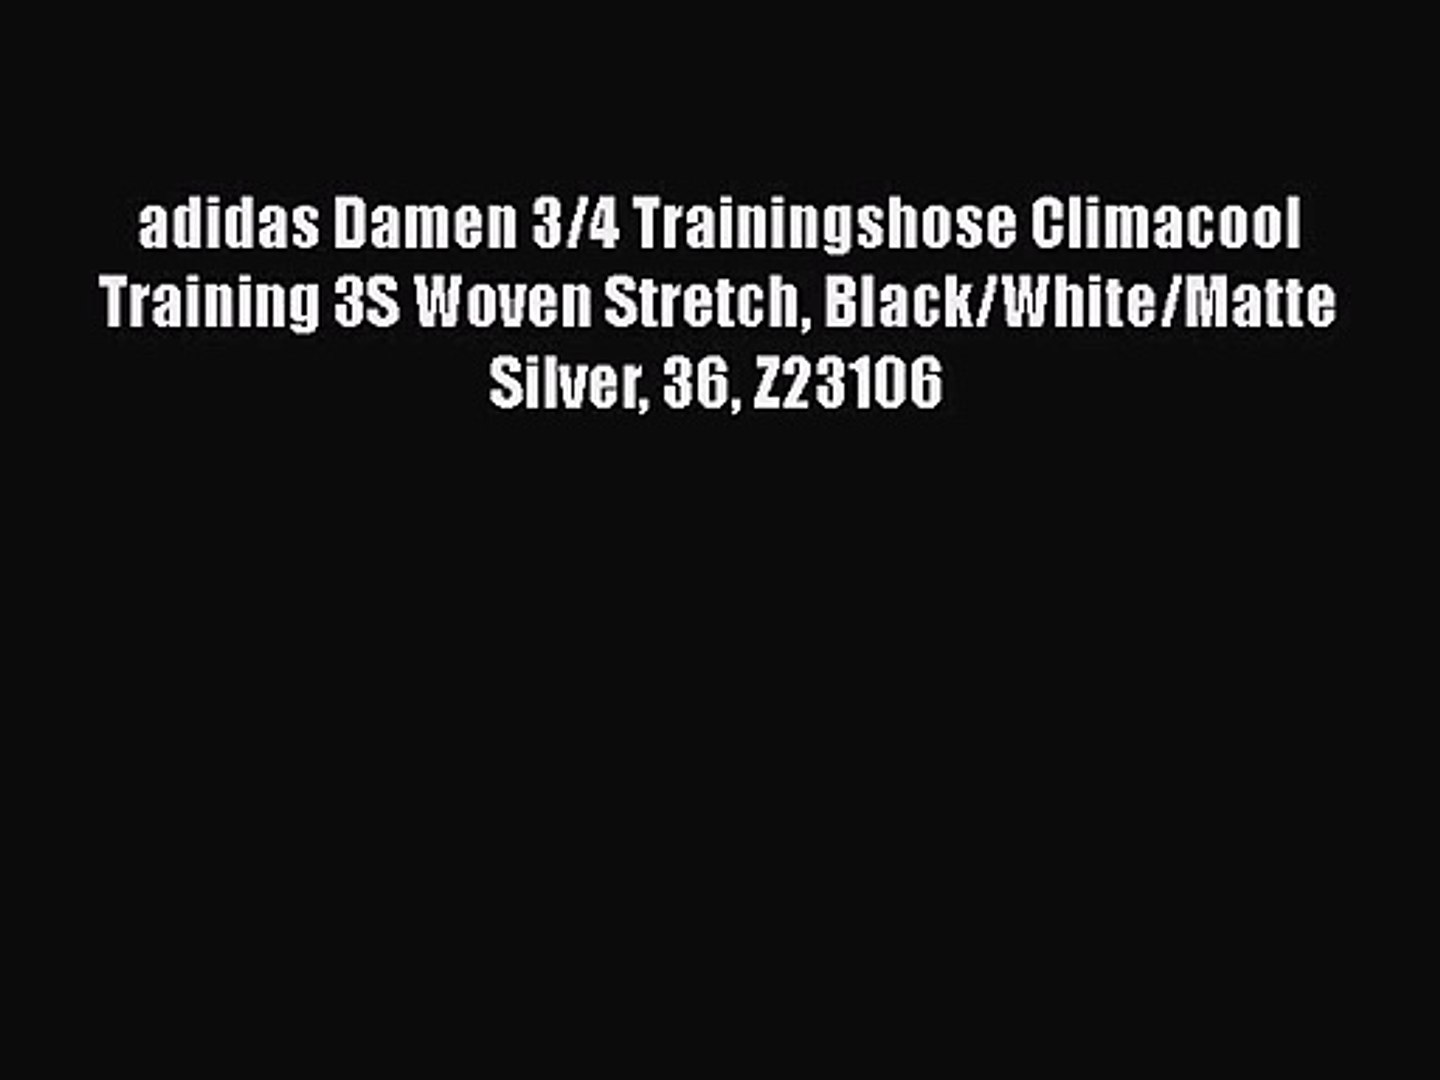 adidas Damen 3/4 Trainingshose Climacool Training 3S Woven Stretch  Black/White/Matte Silver